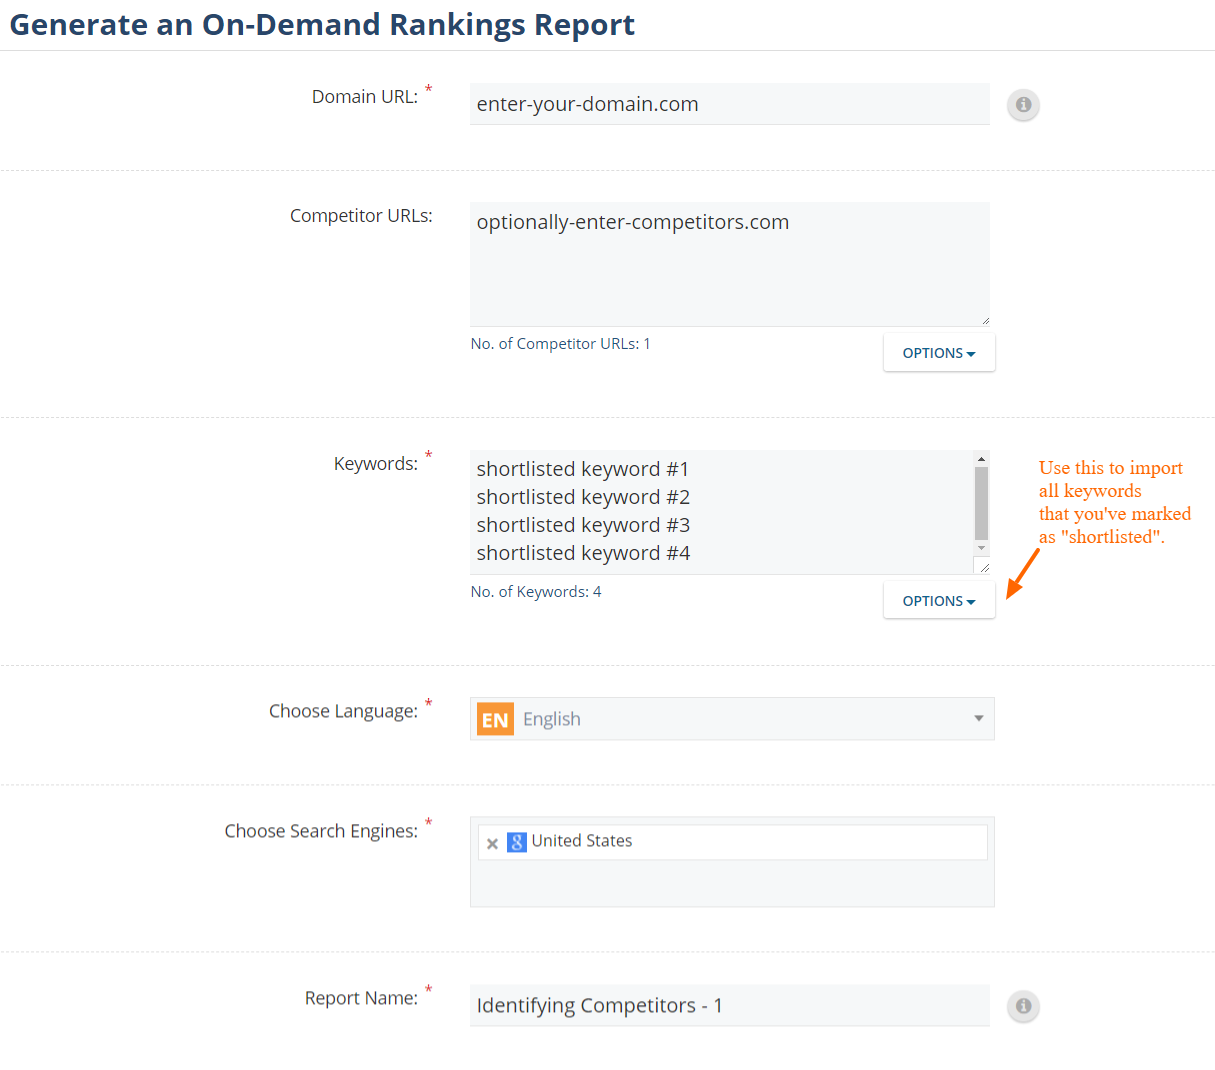 Generate an On-Demand Rankings Report